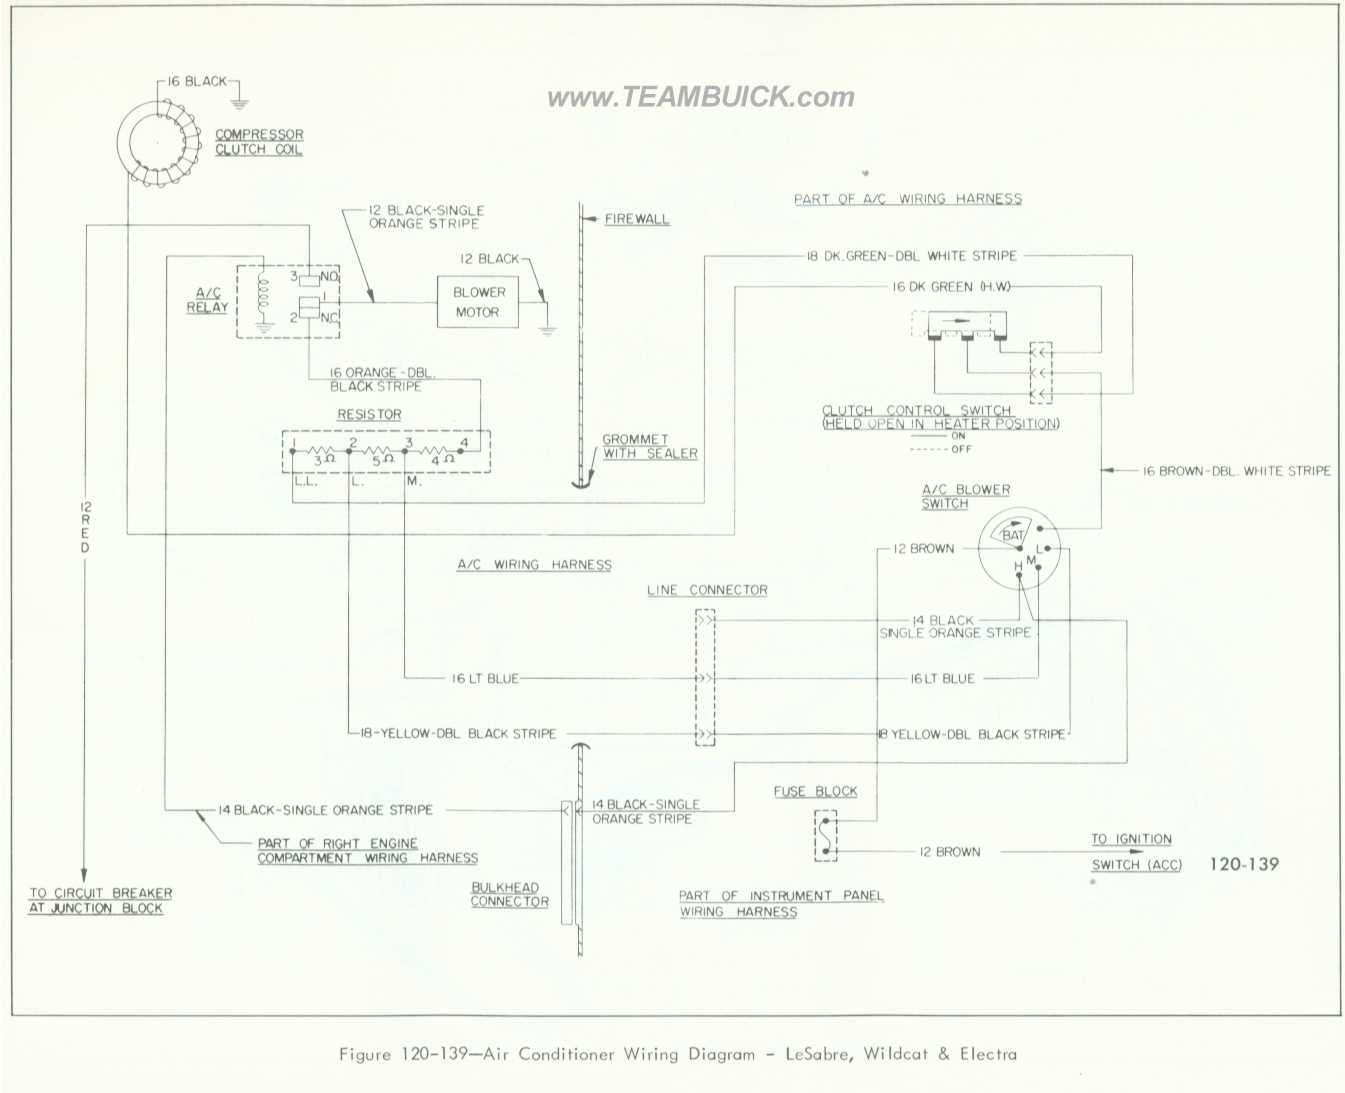 Rheem Air Conditioning Wiring Diagram Wiring Diagrams Database – Rheem Heat Pump Wiring Diagram